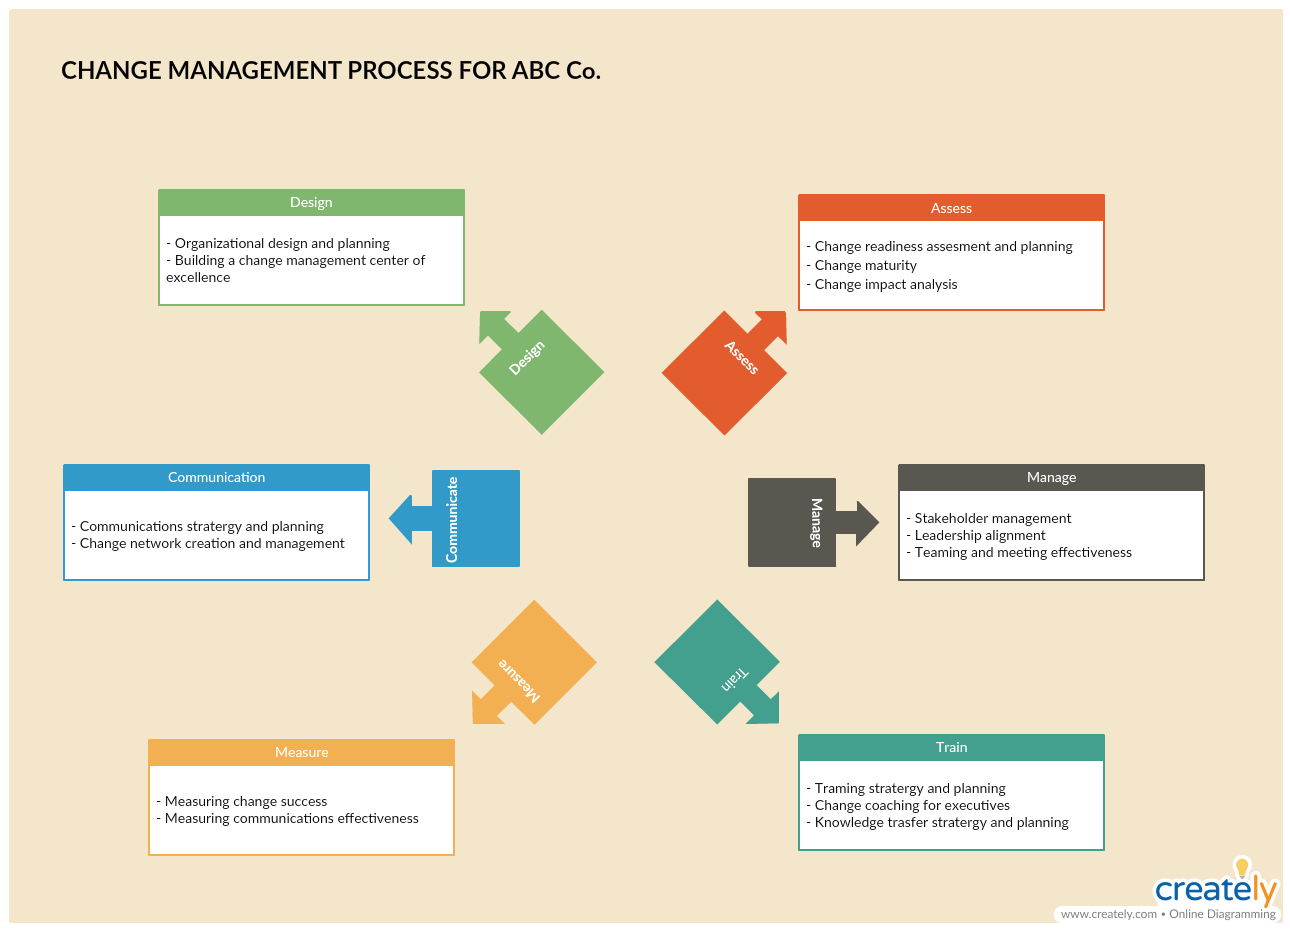 8 Vital Change Management Tools For Effectively Managing Change